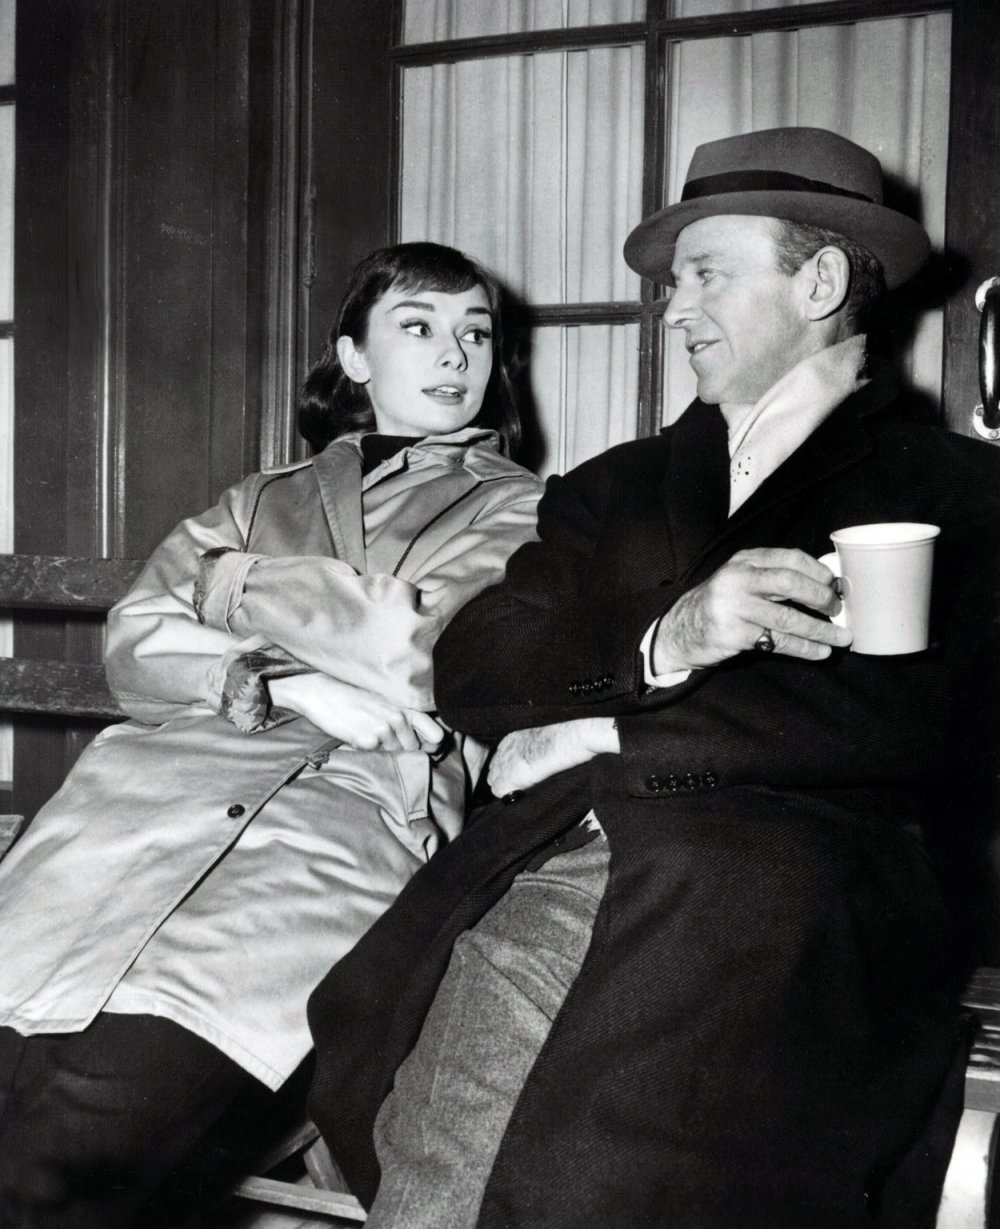 Hepburn and Astaire chat over coffee